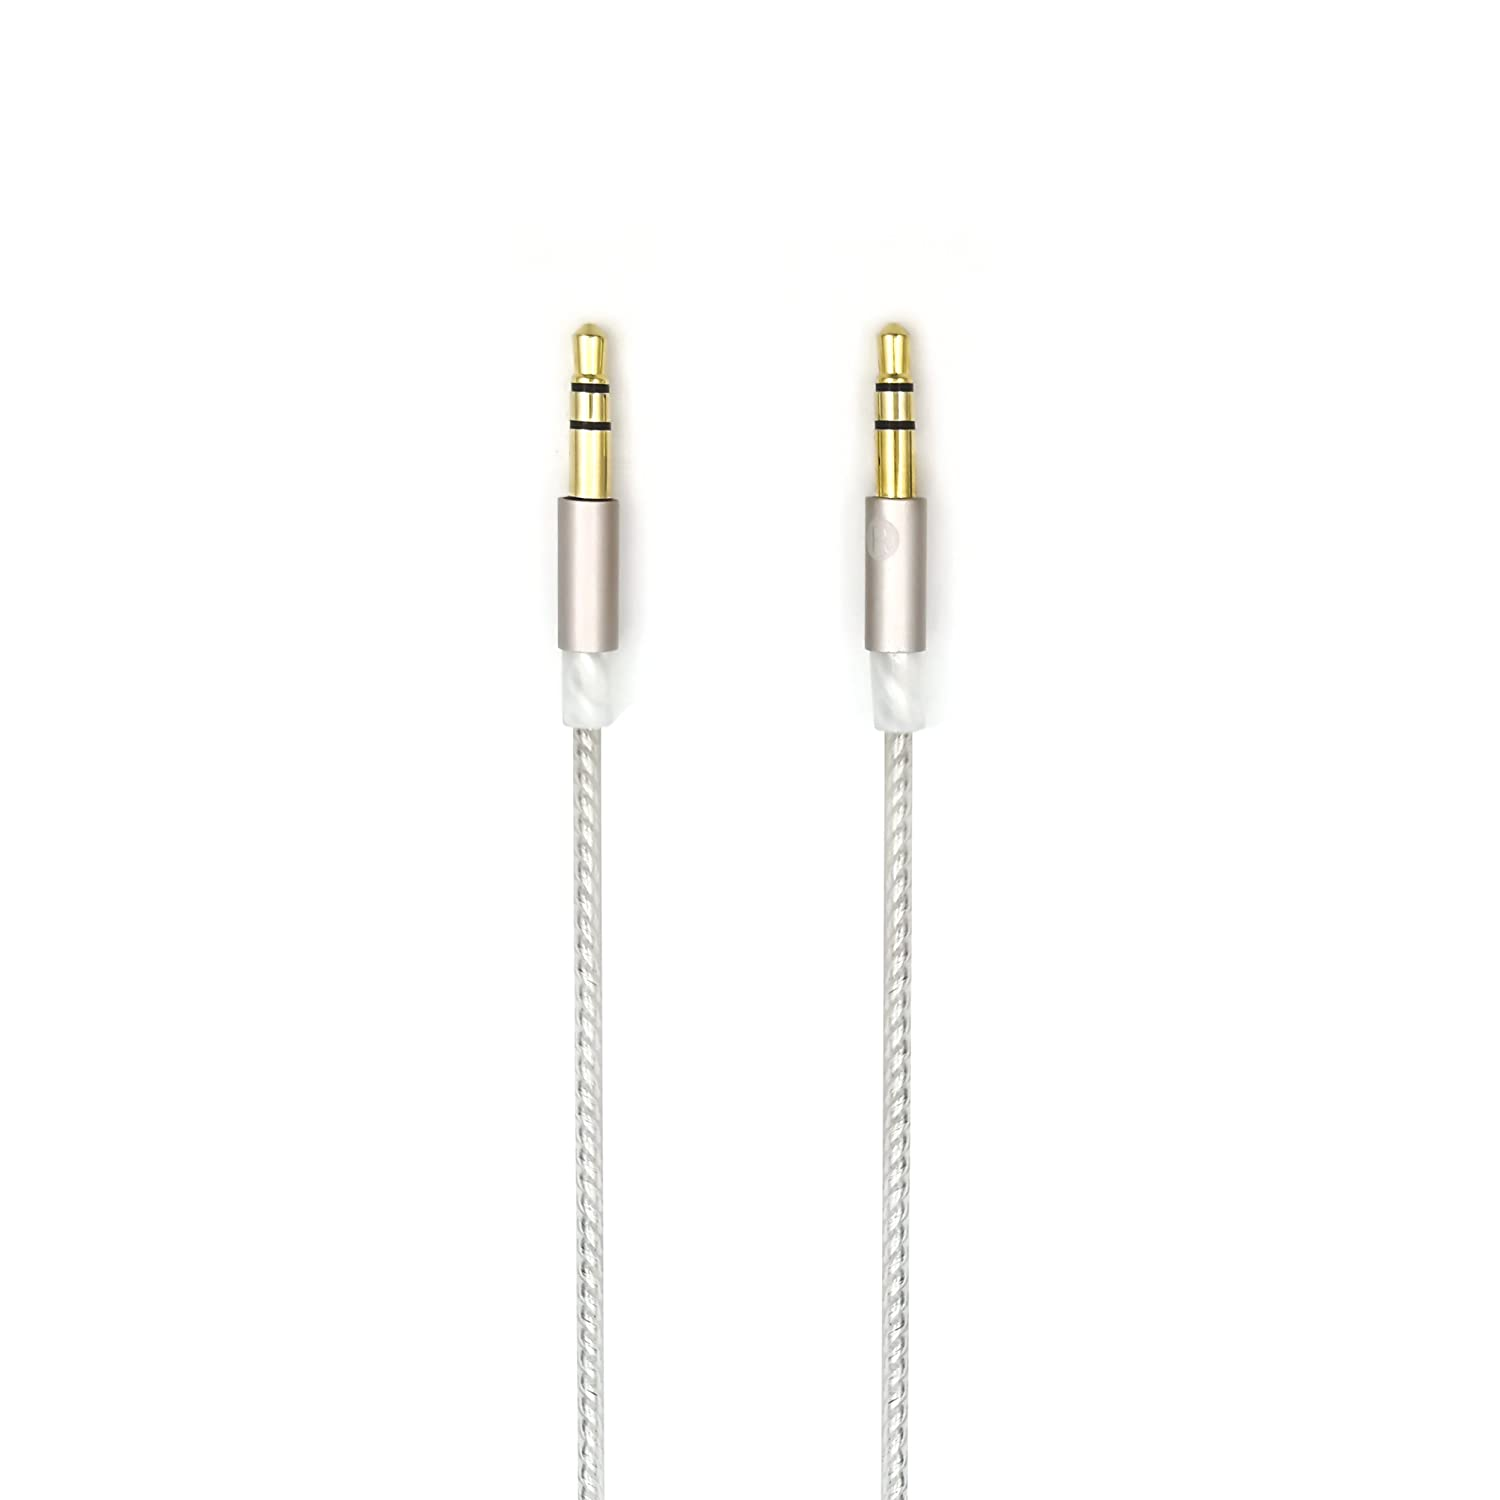 Amazon.com: Sukira HIFI cable for Beyerdynamic T1 2nd / T5p Second Generation headphones Balance Line (4-pin XLR Male) Upgrade Cable, Silver Plated Wire ...